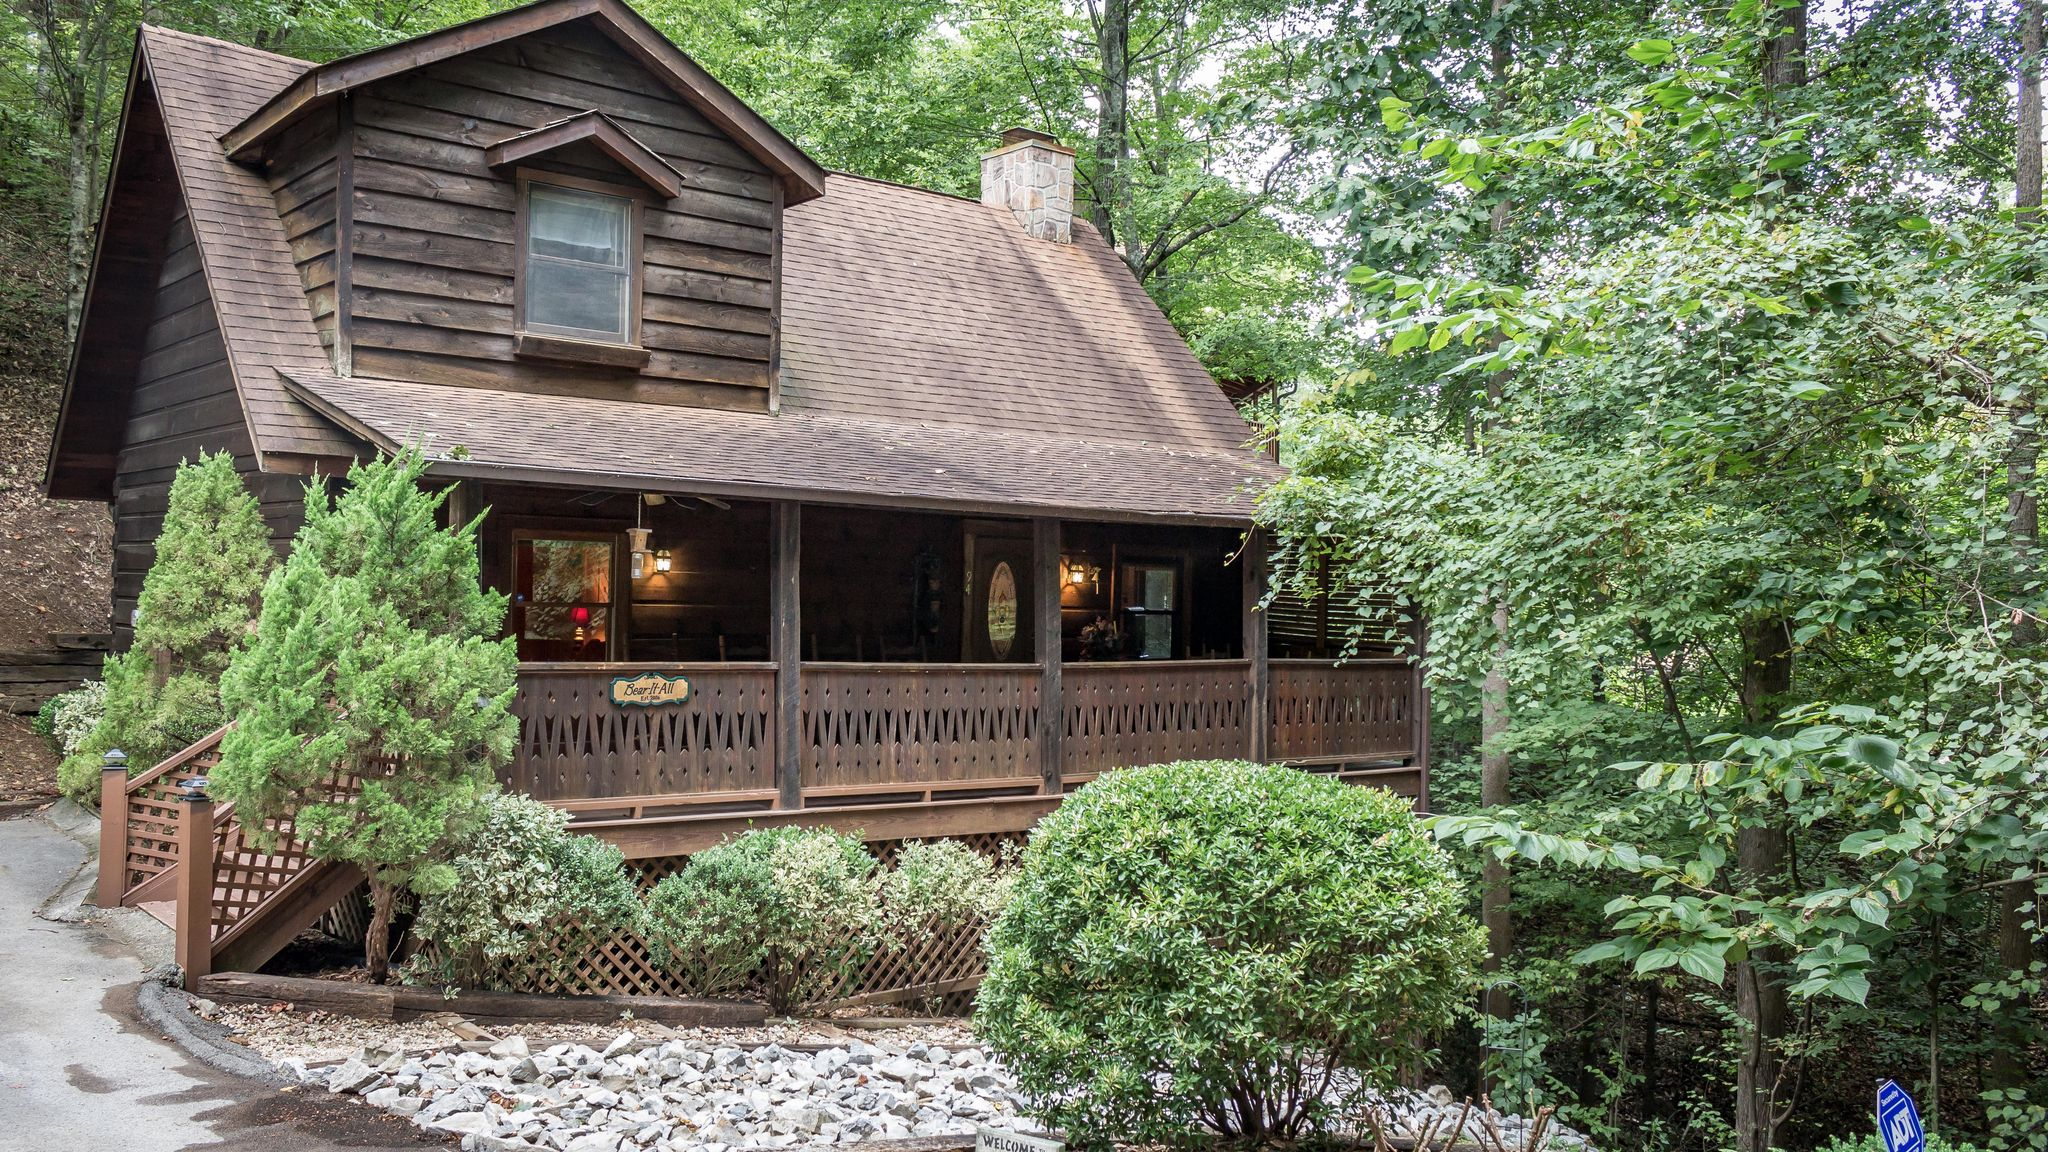 youtube mountains forge sale real for smoky in watch log pigeon cabins estate cabin tn